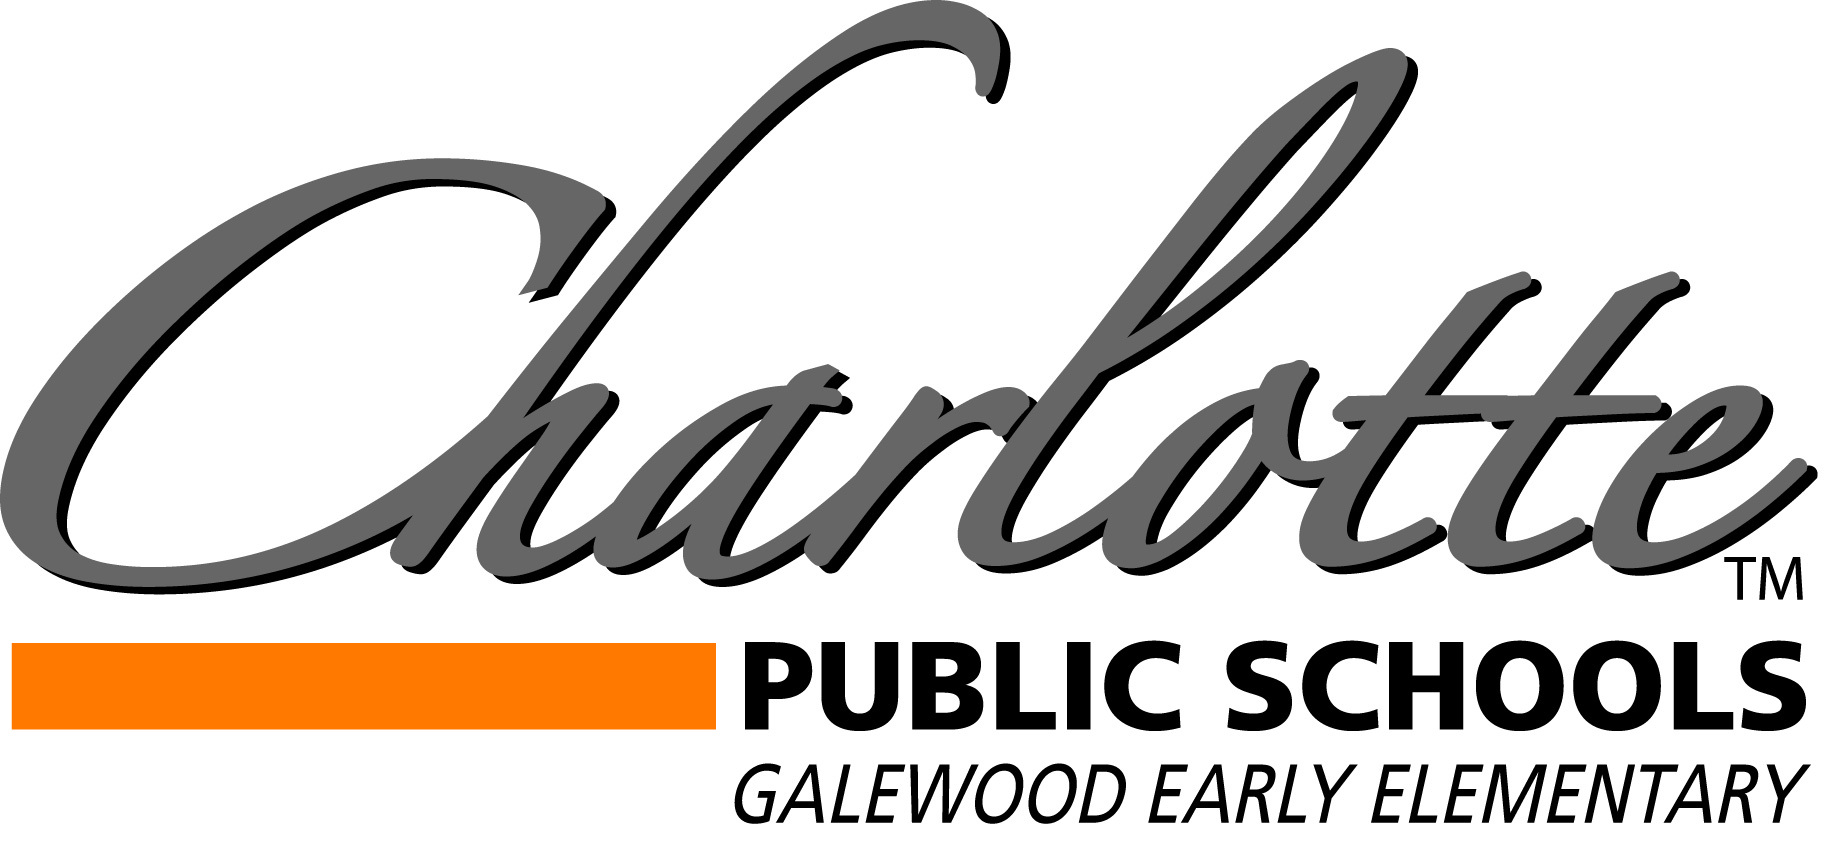 Charlotte Public Schools Galewood Early Elementary